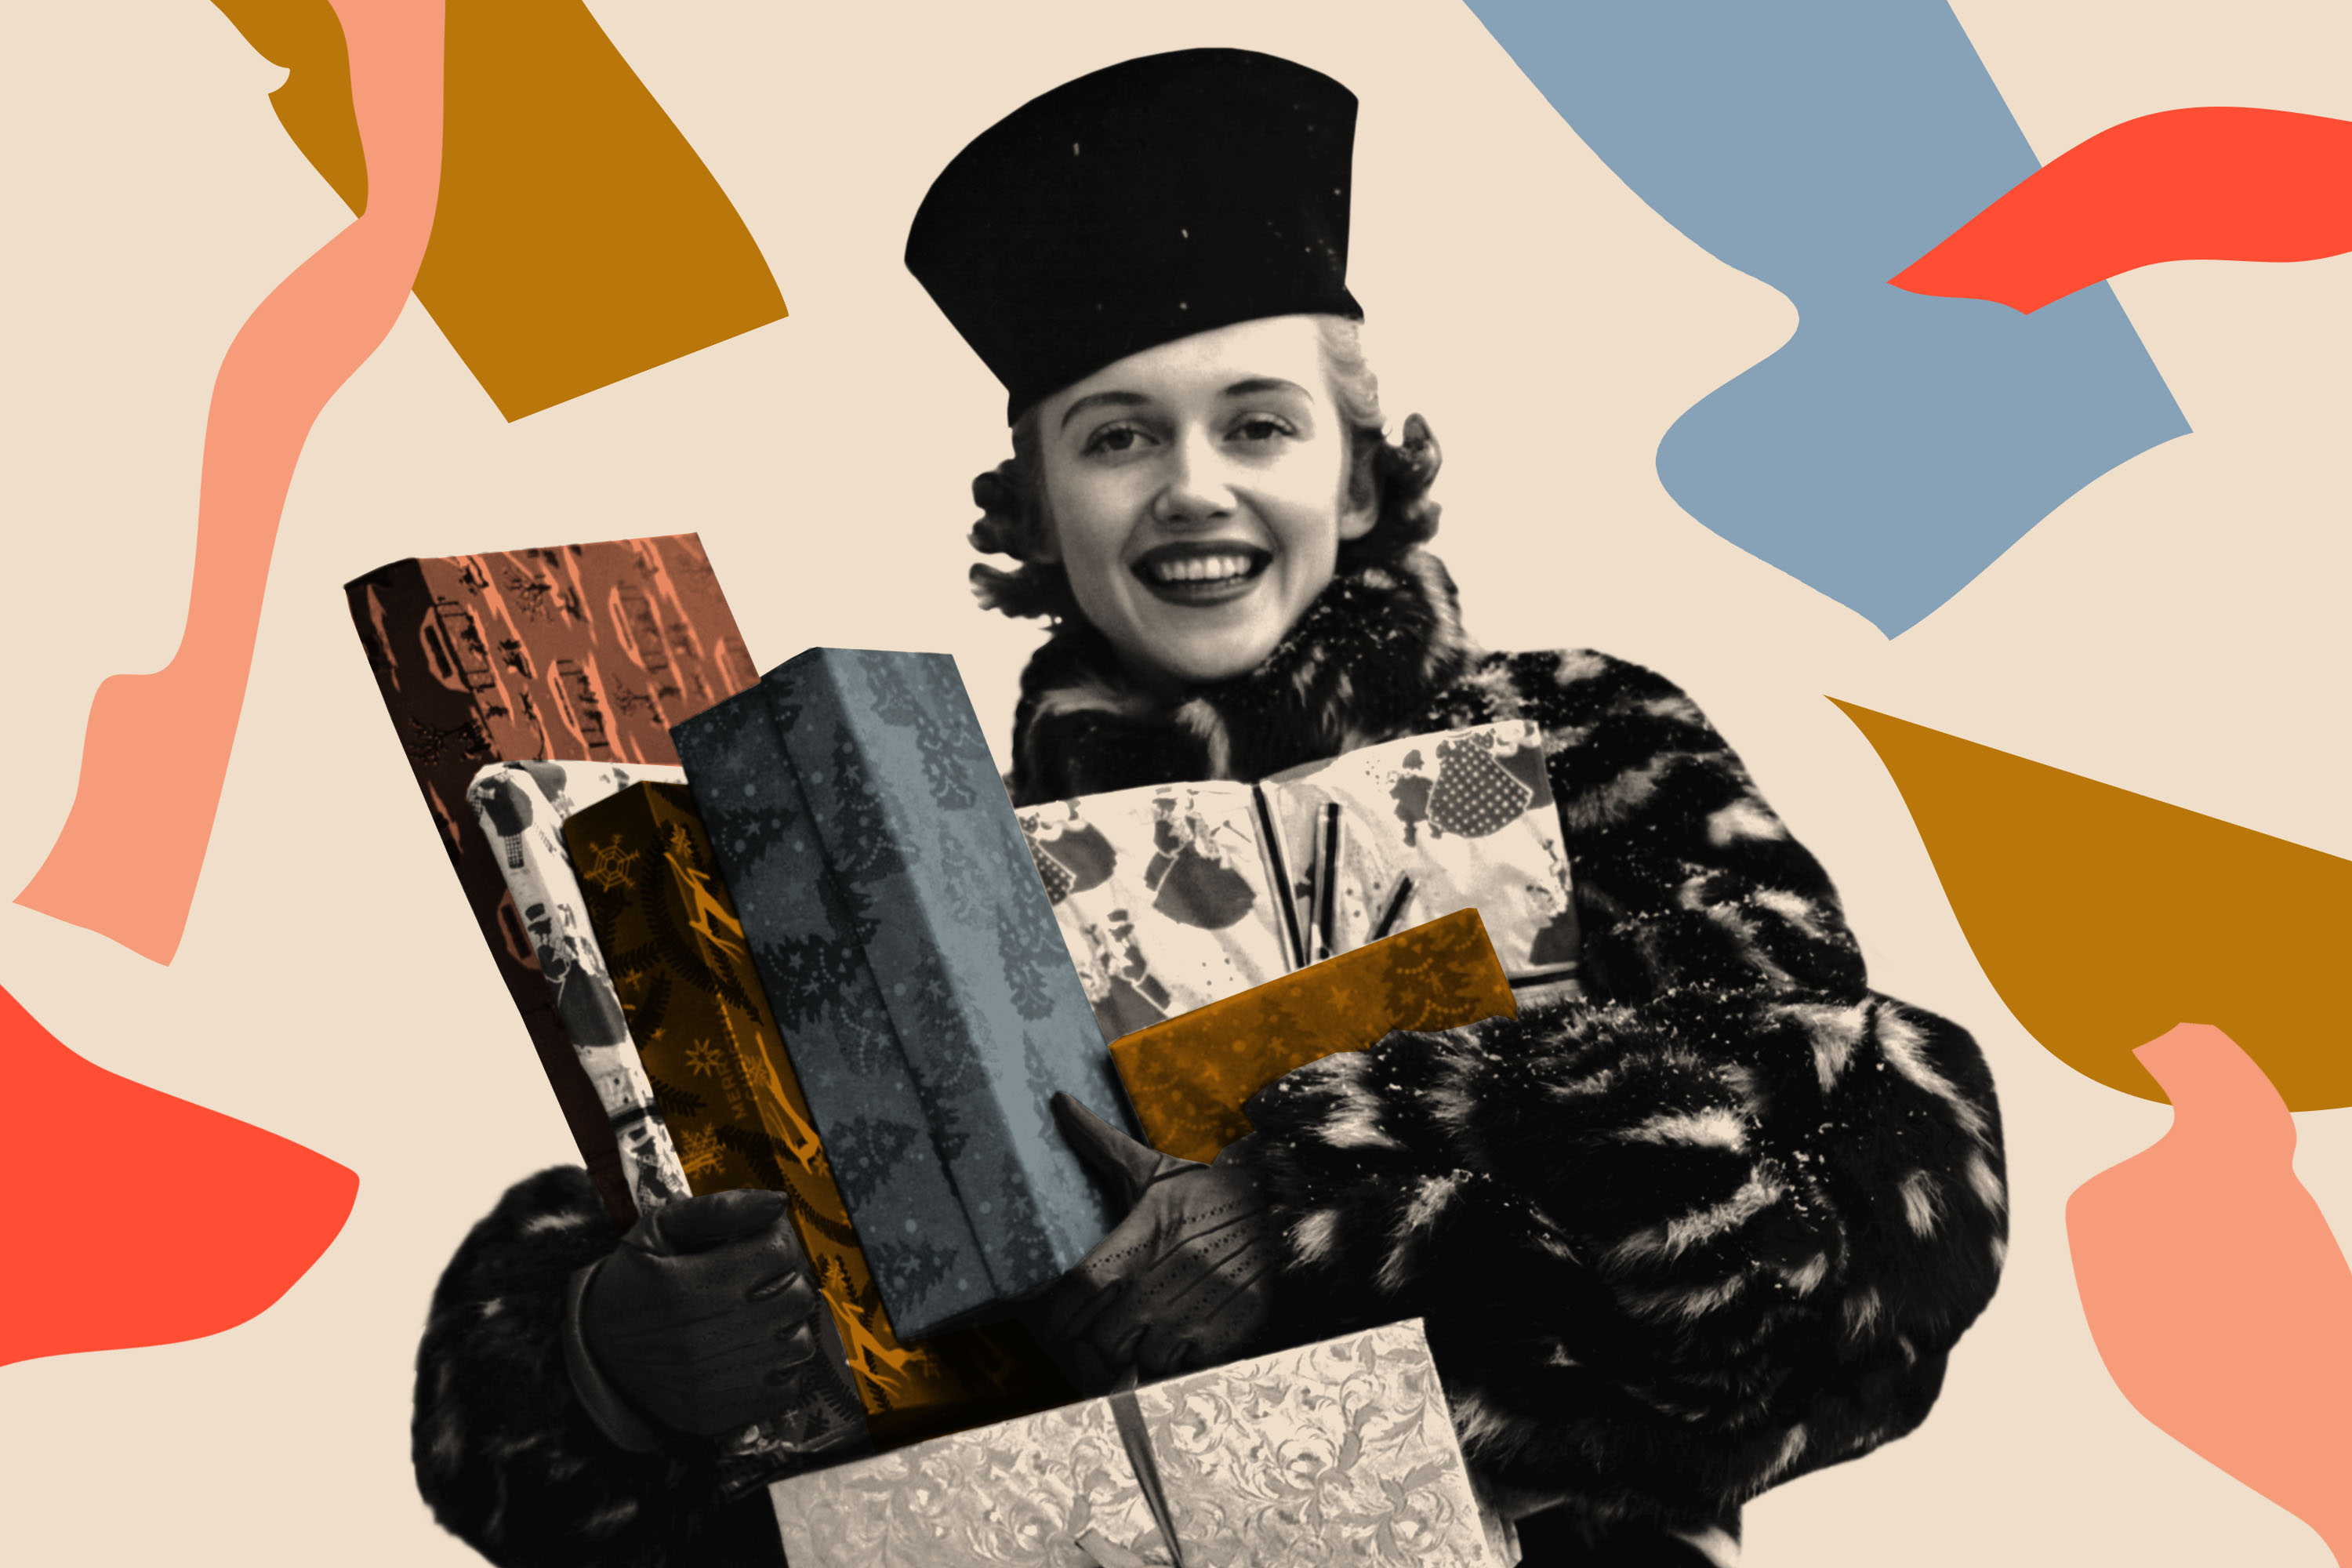 A 1940's woman with a short bob in a fur coat holds 7 gifts wrapped in holiday paper. Photo collage.